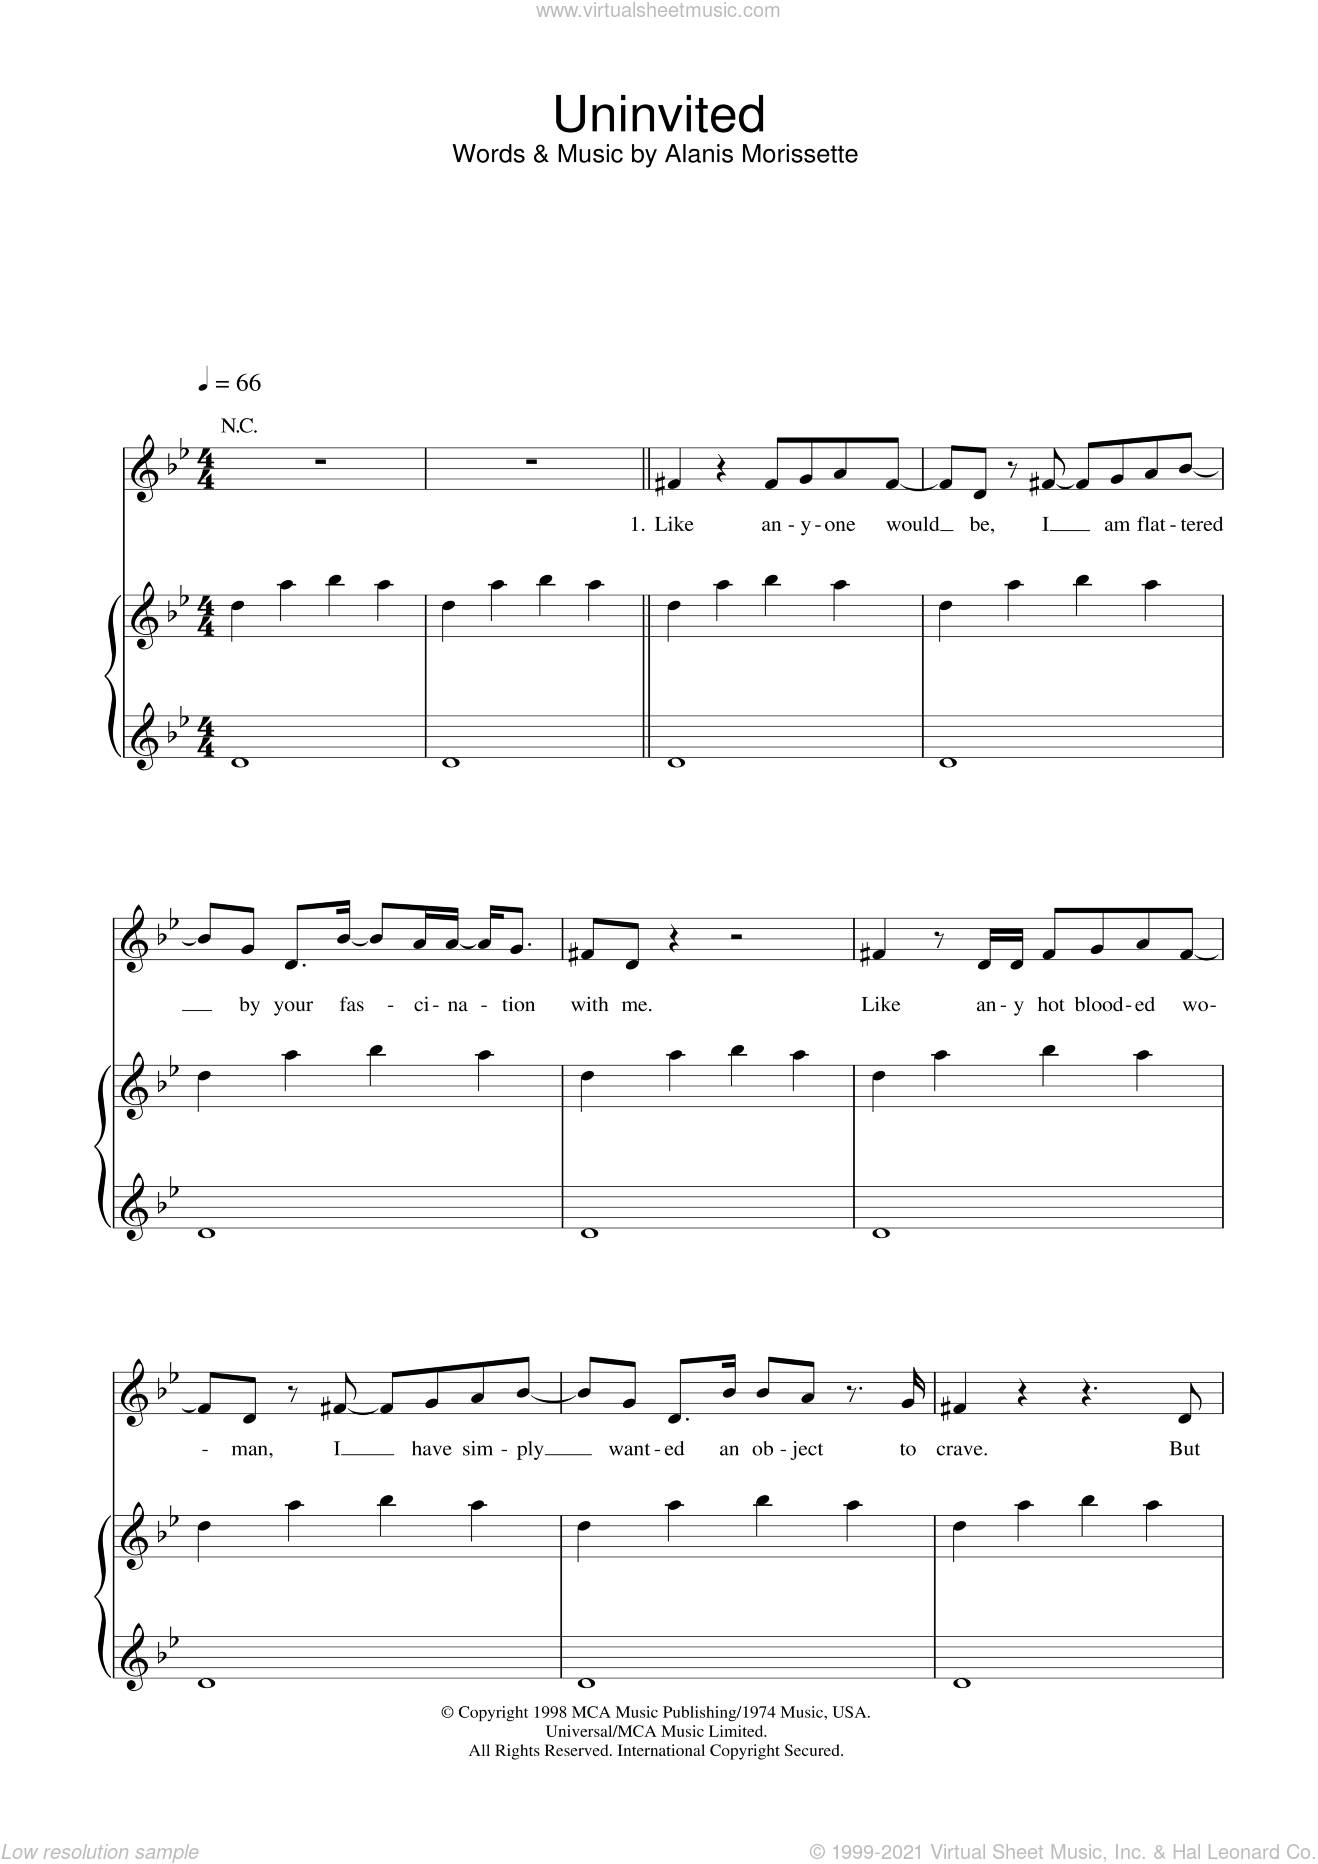 Uninvited sheet music for voice, piano or guitar by Alanis Morissette, intermediate skill level